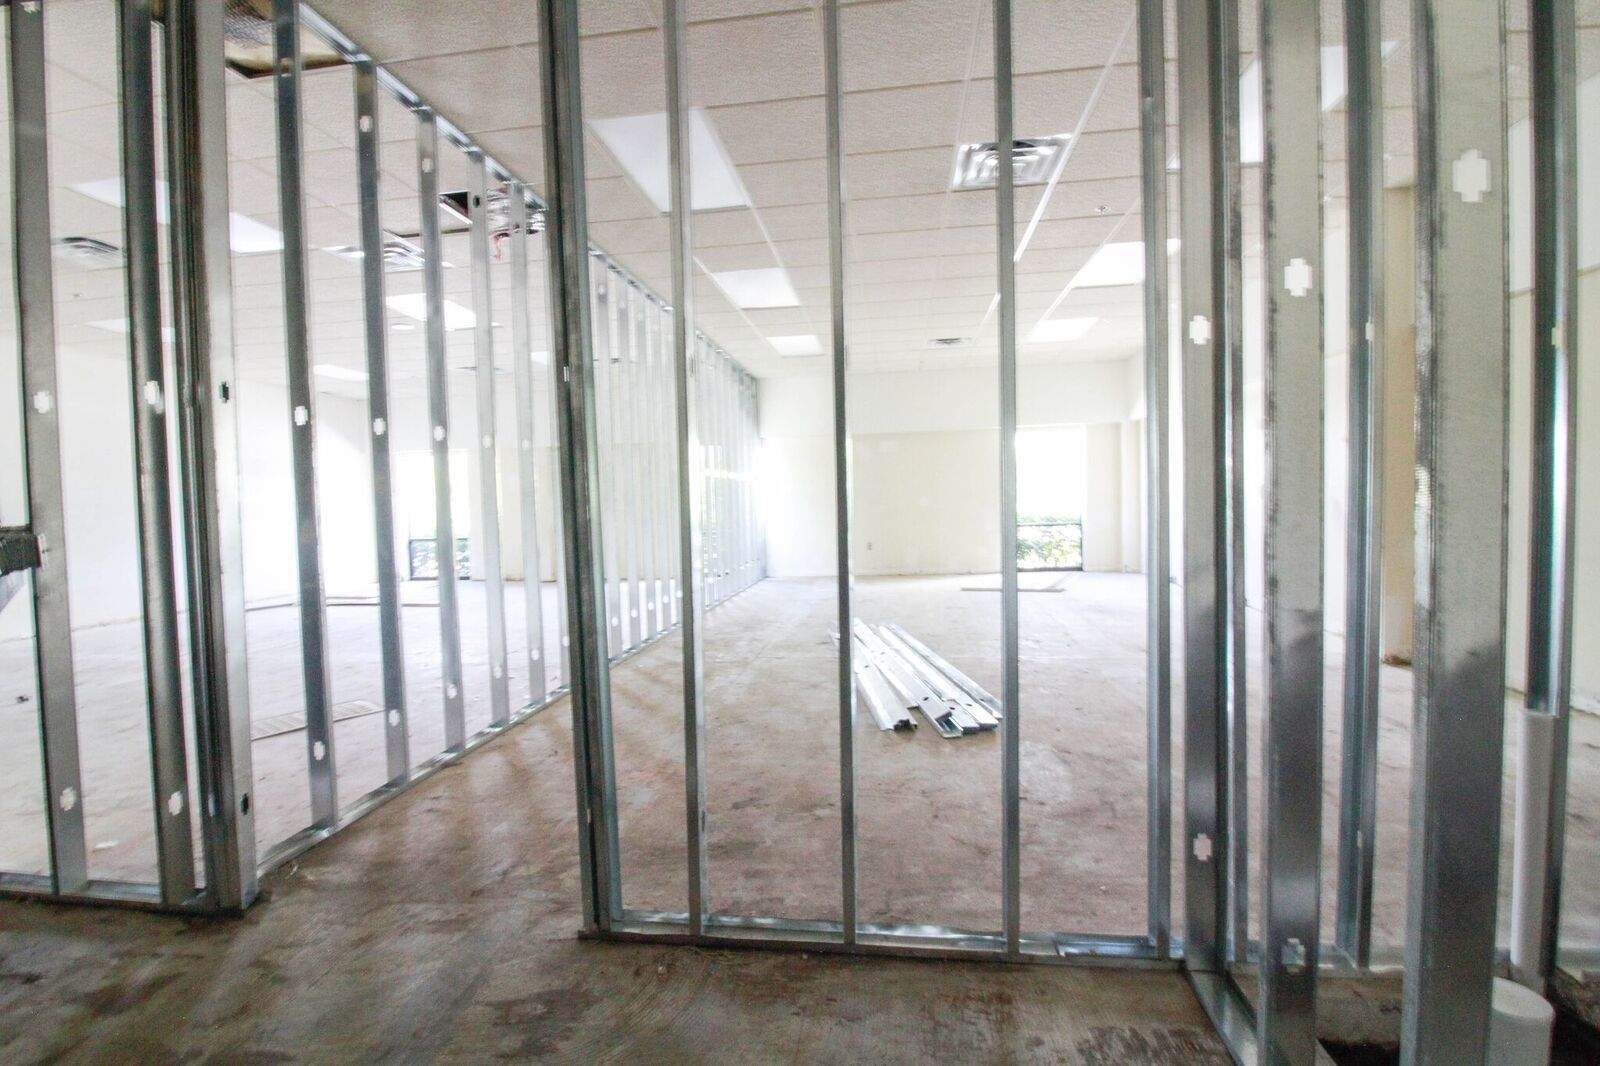 All of the large classrooms along the graceKIDS halls have now been framed into two rooms to create great spaces for our children.